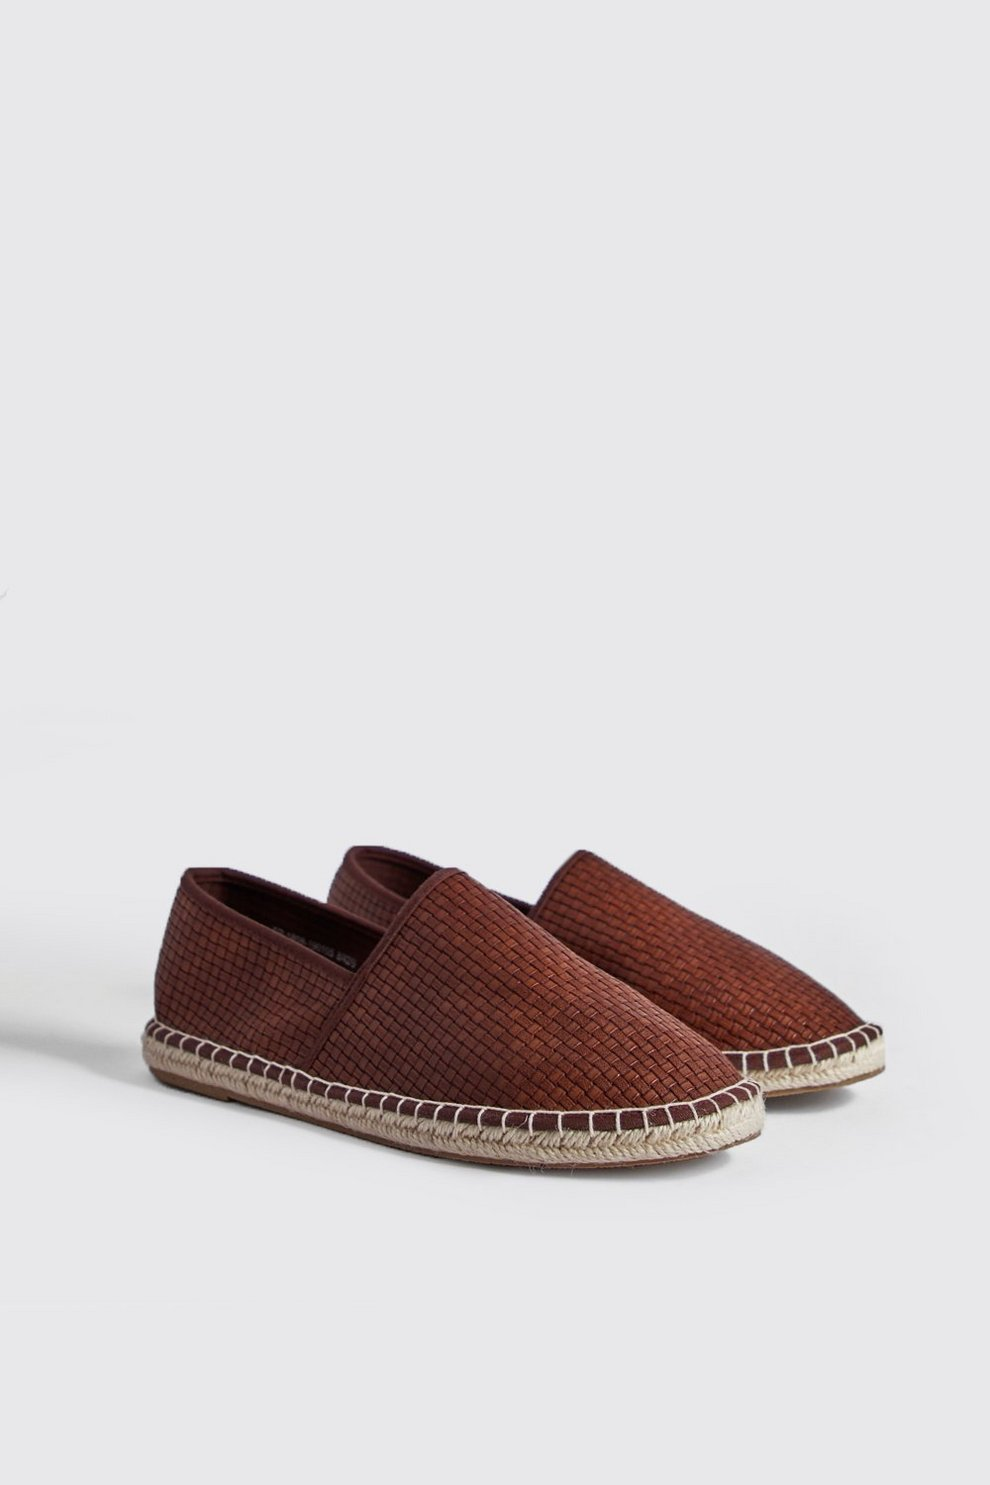 b544f673ece3 Mens Tan Hand Stitch Faux Leather Espadrille. Hover to zoom